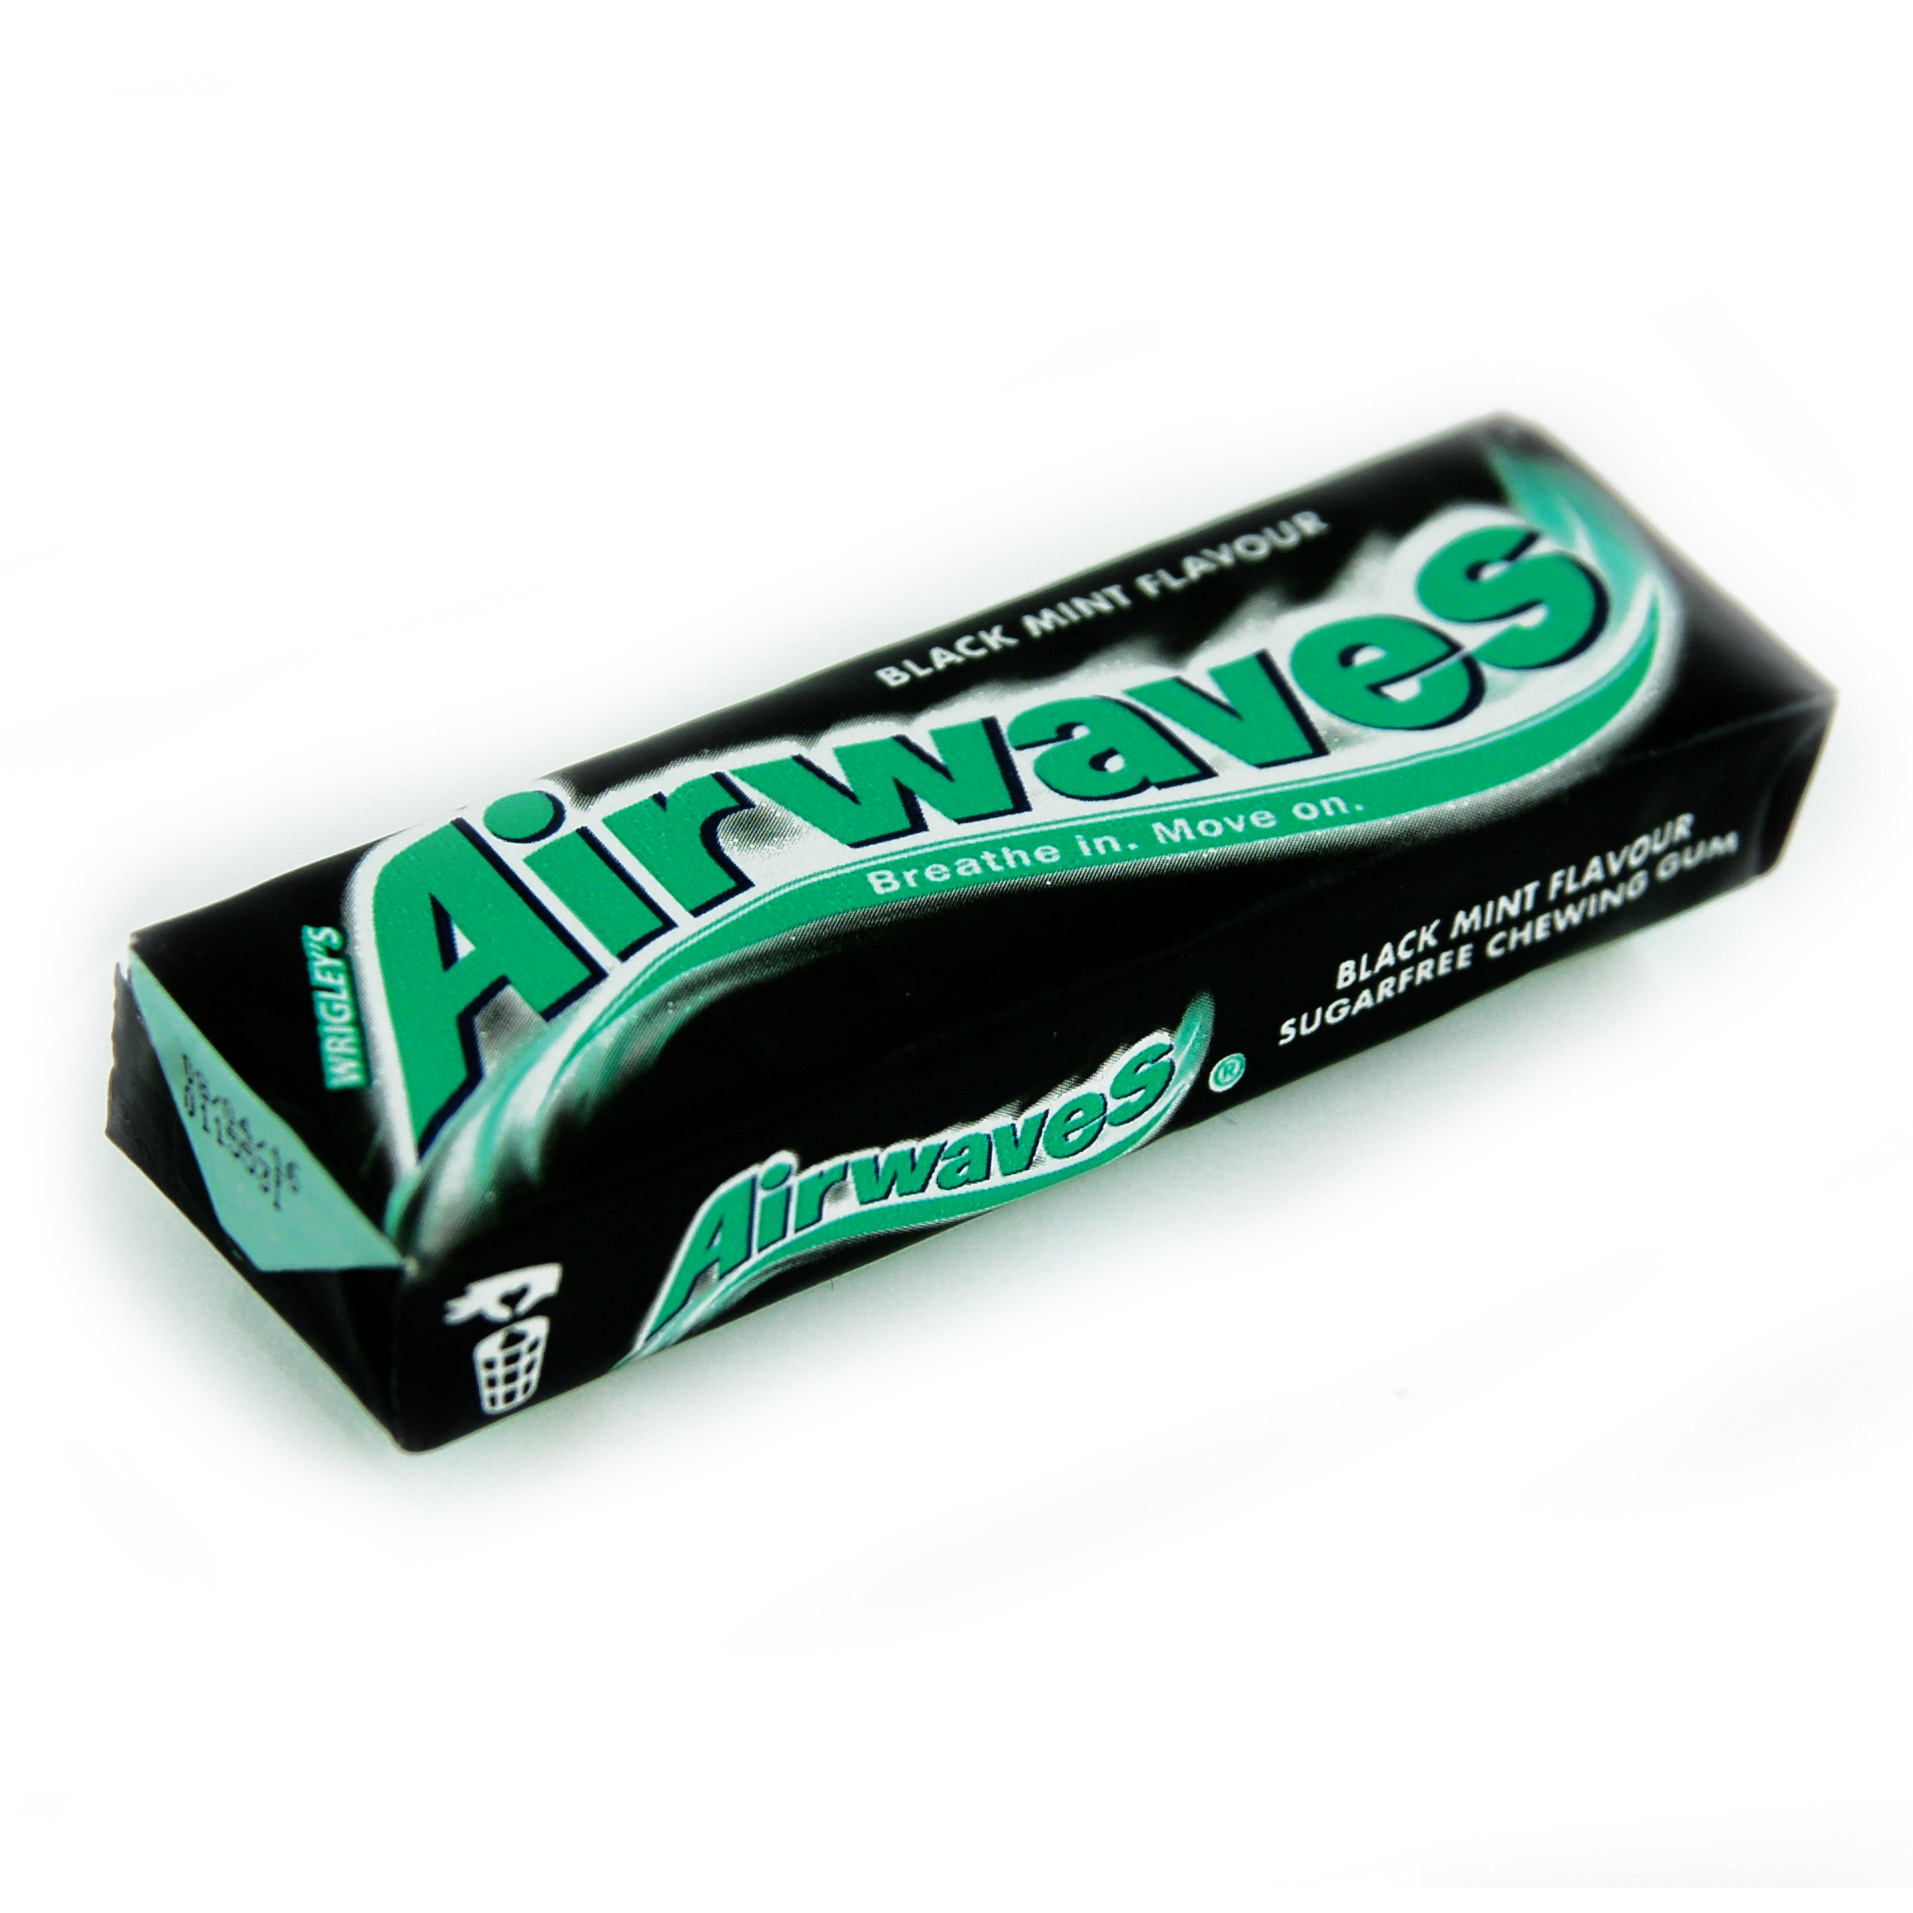 Airwaves Black Mint 10er Online Kaufen Im World Of Sweets Shop